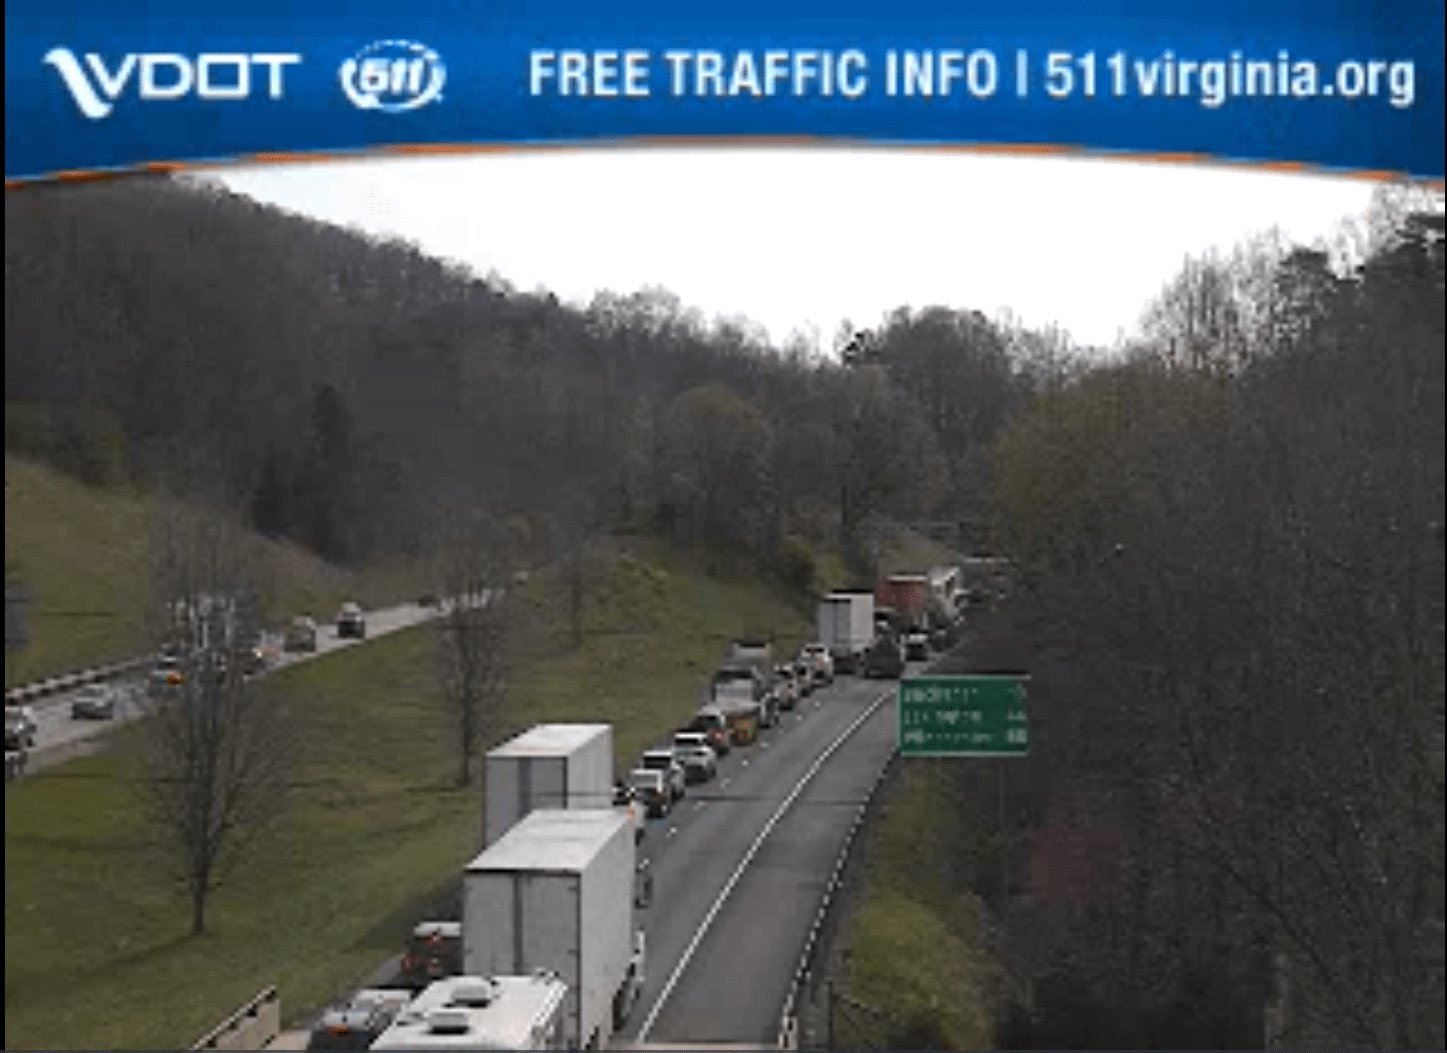 TRAFFIC ALERT: Vehicle accident causing delays on I-81 in Botetourt Co